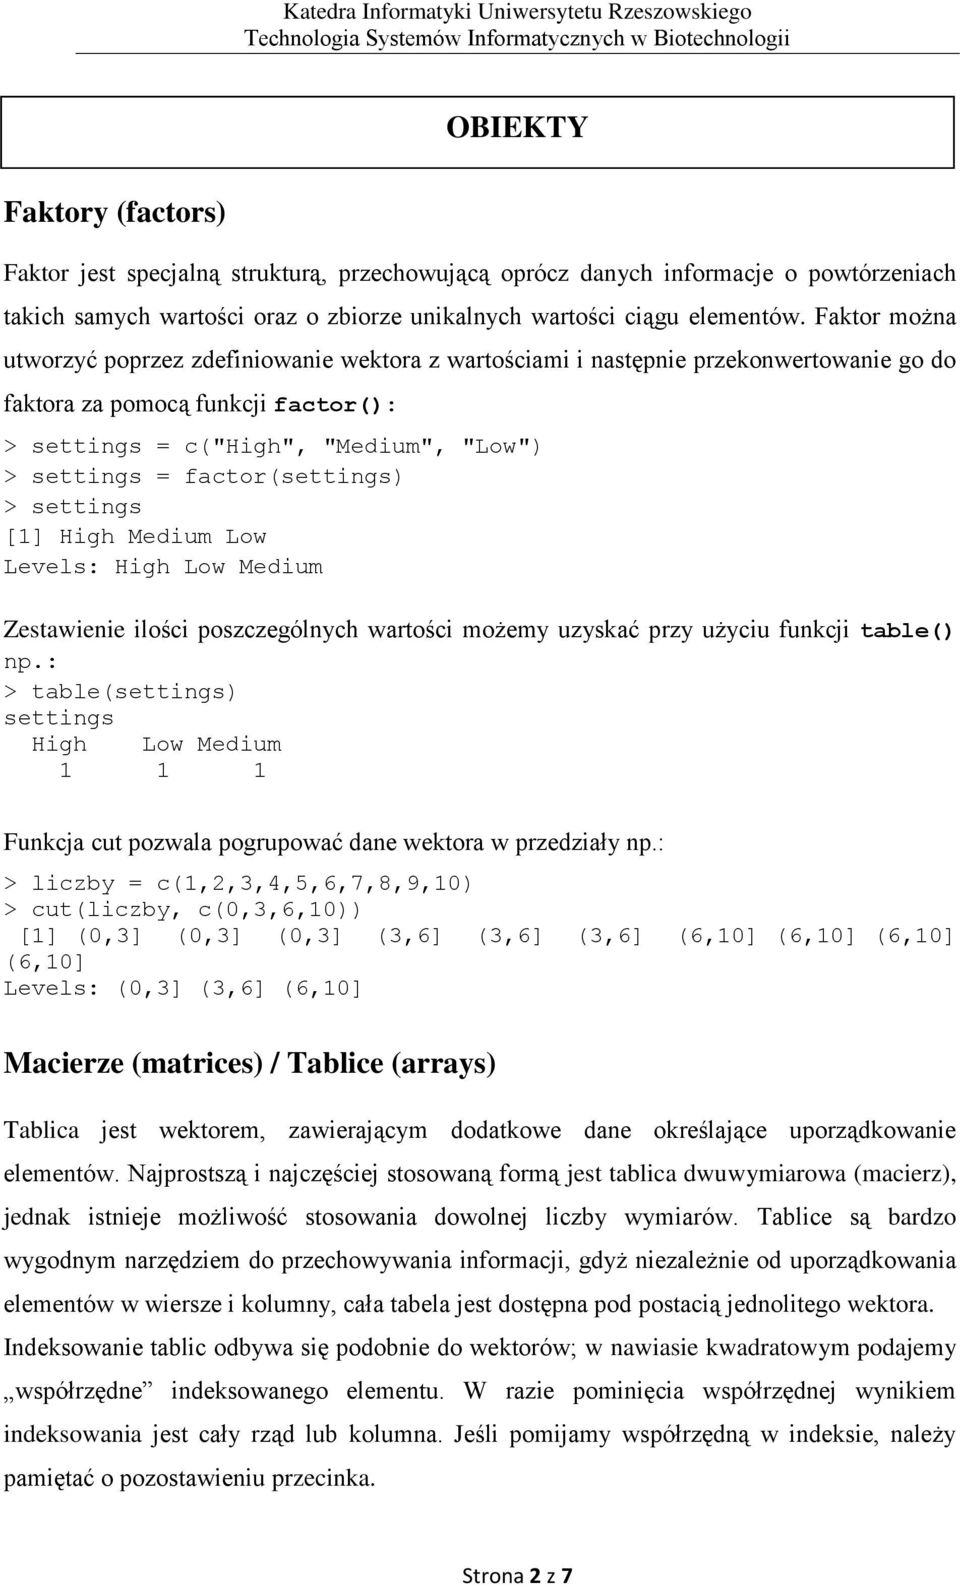 factor(settings) > settings [1] High Medium Low Levels: High Low Medium Zestawienie ilości poszczególnych wartości możemy uzyskać przy użyciu funkcji table() np.